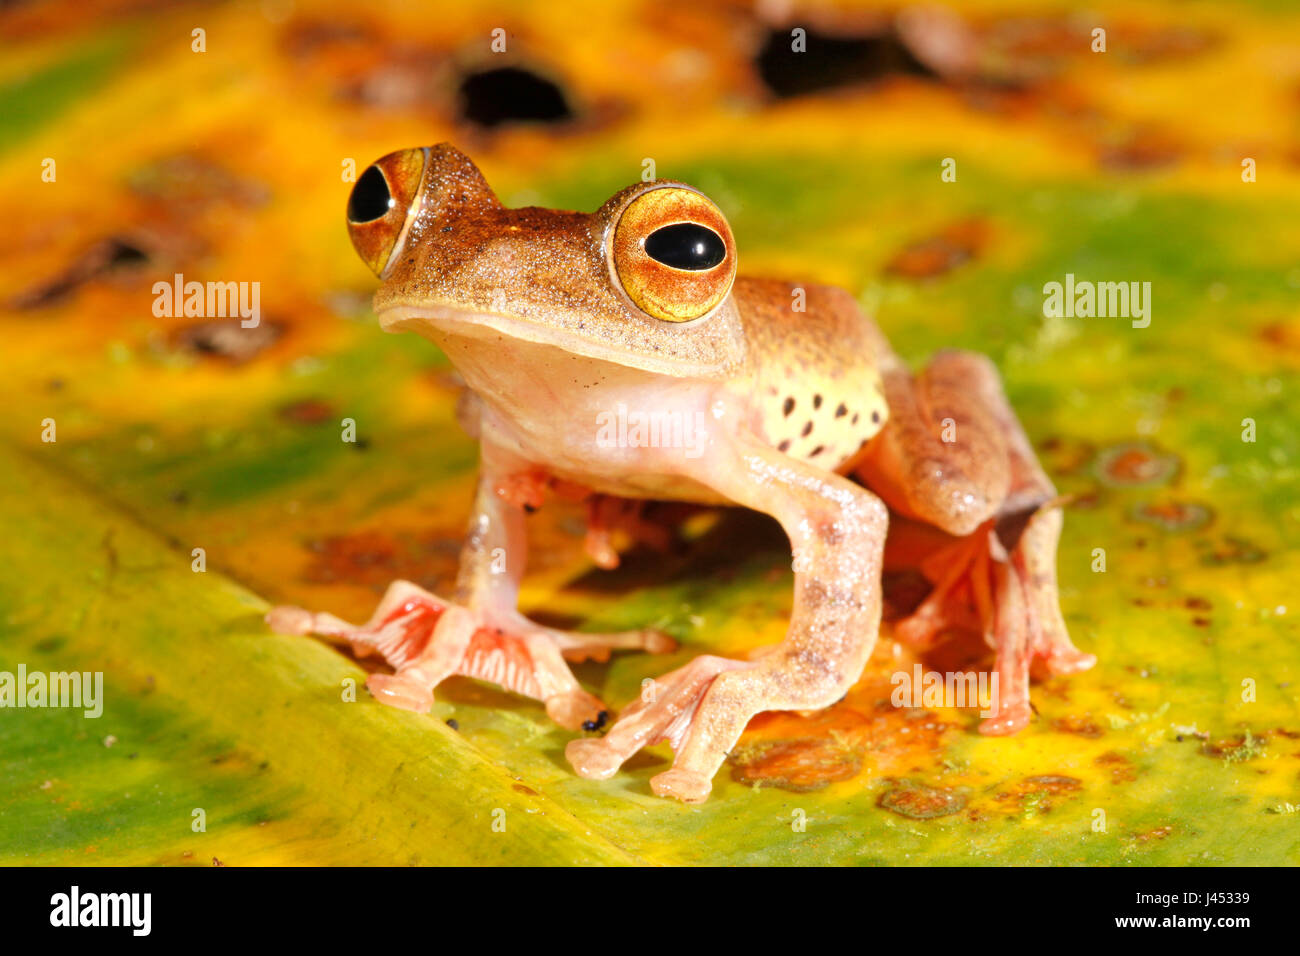 Photo of a harlequin tree frog on a dead banana leaf with green, yellow, brown and orange colours - Stock Image